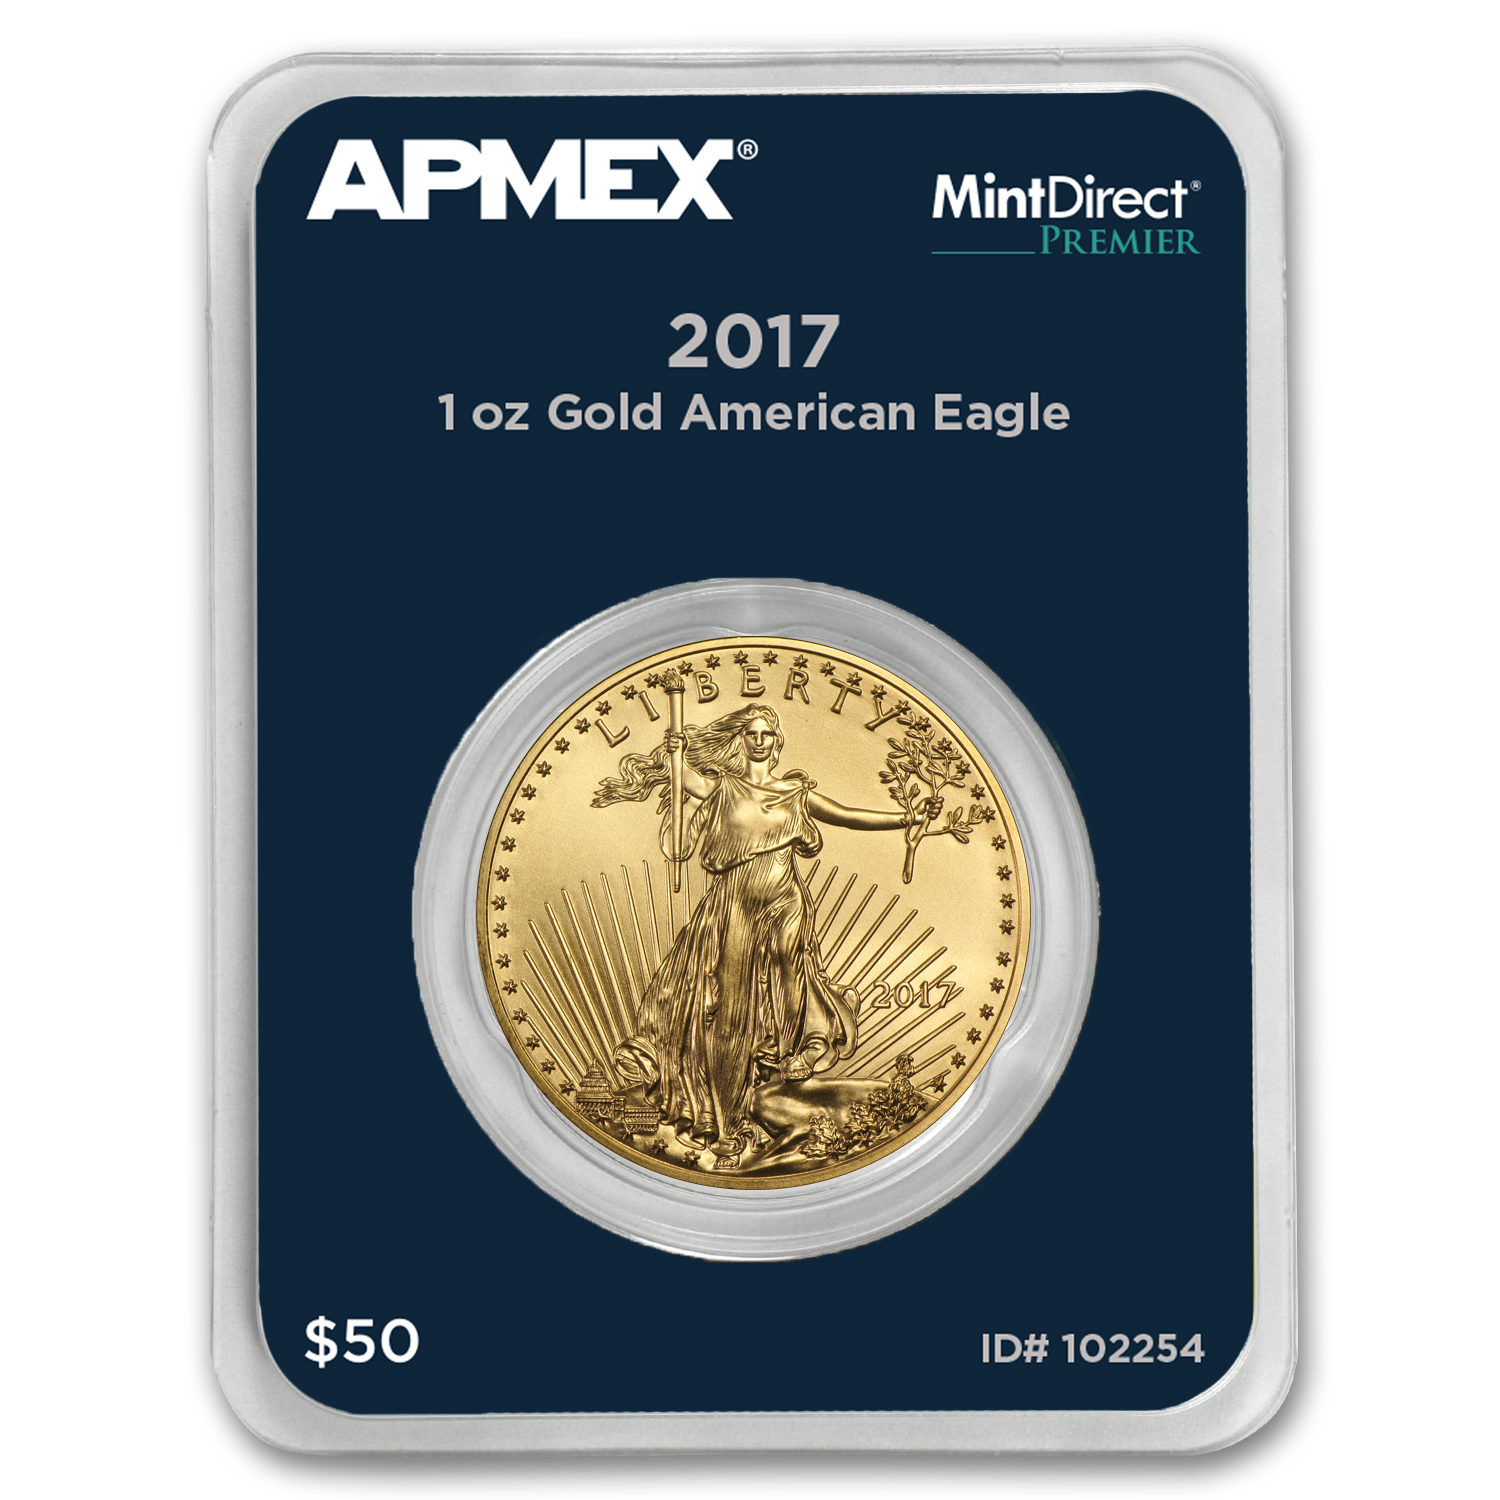 2017 1 oz Gold American Eagle (MintDirect® Premier Single)